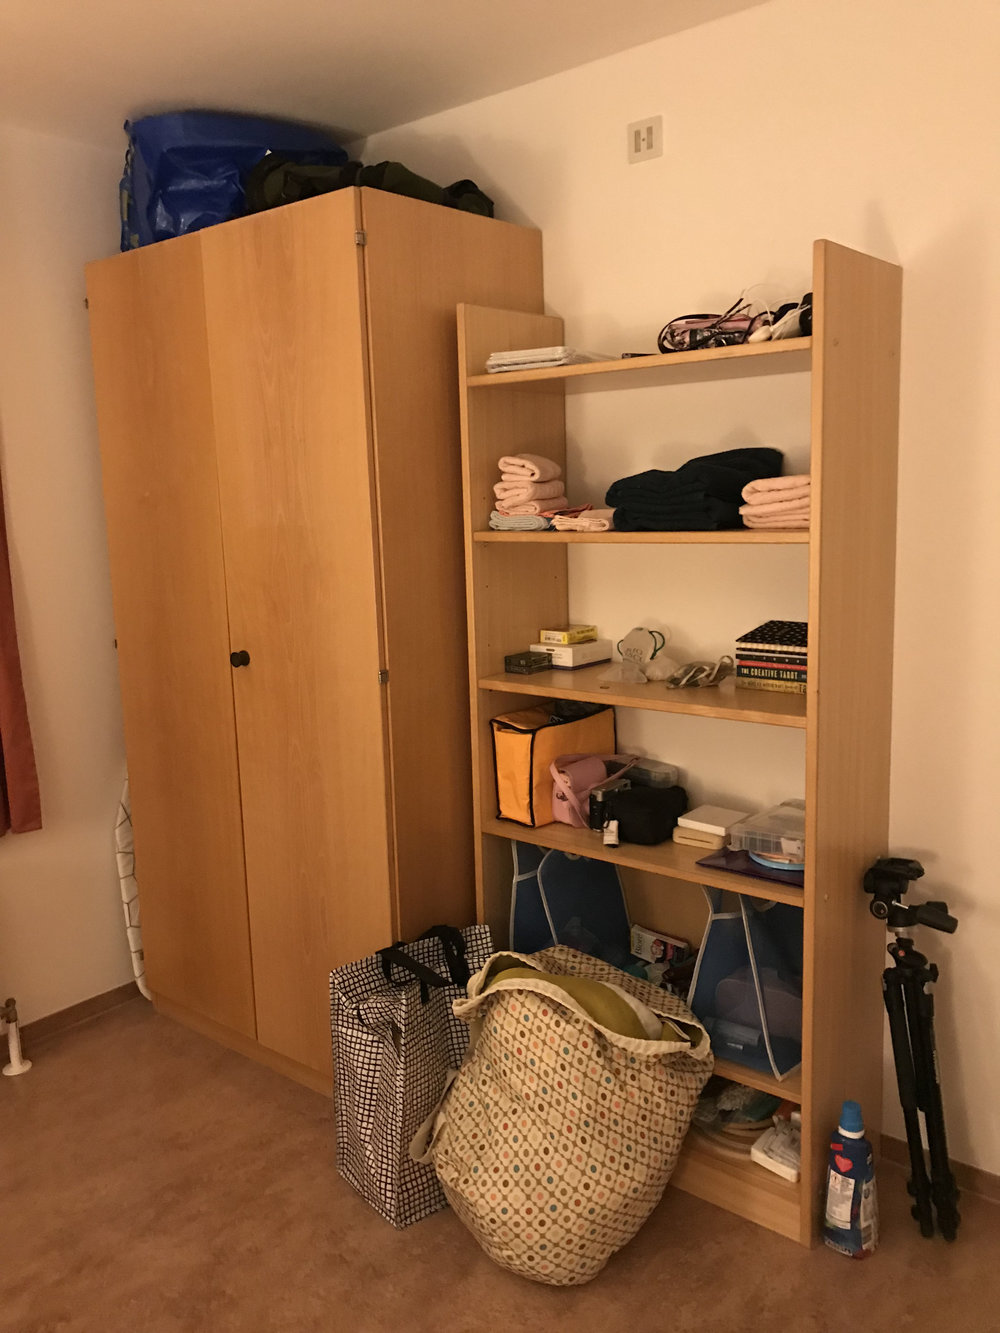 My little room, my home for the next year, after IKEA.